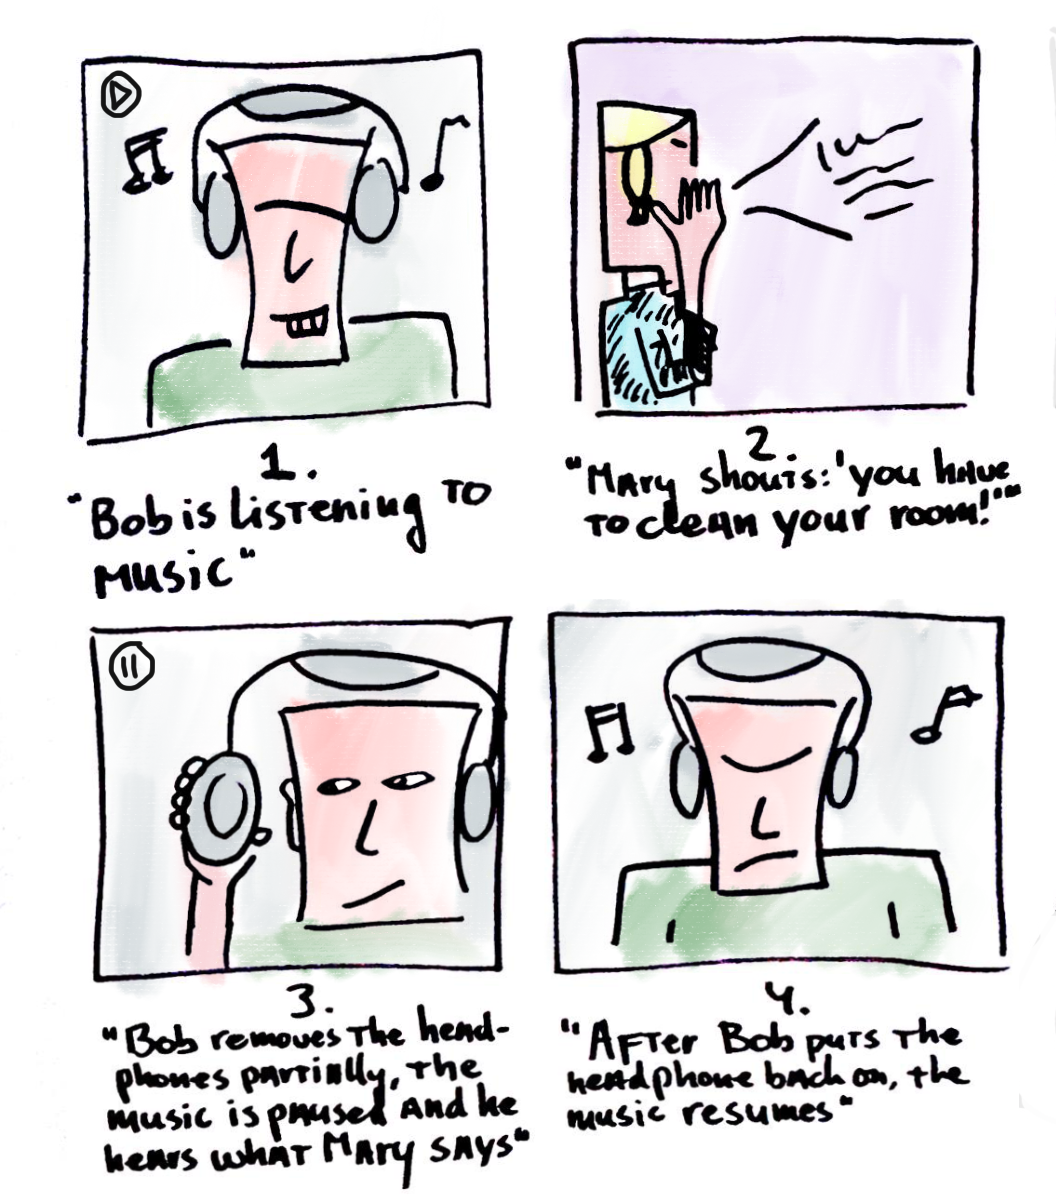 Use case for headphones